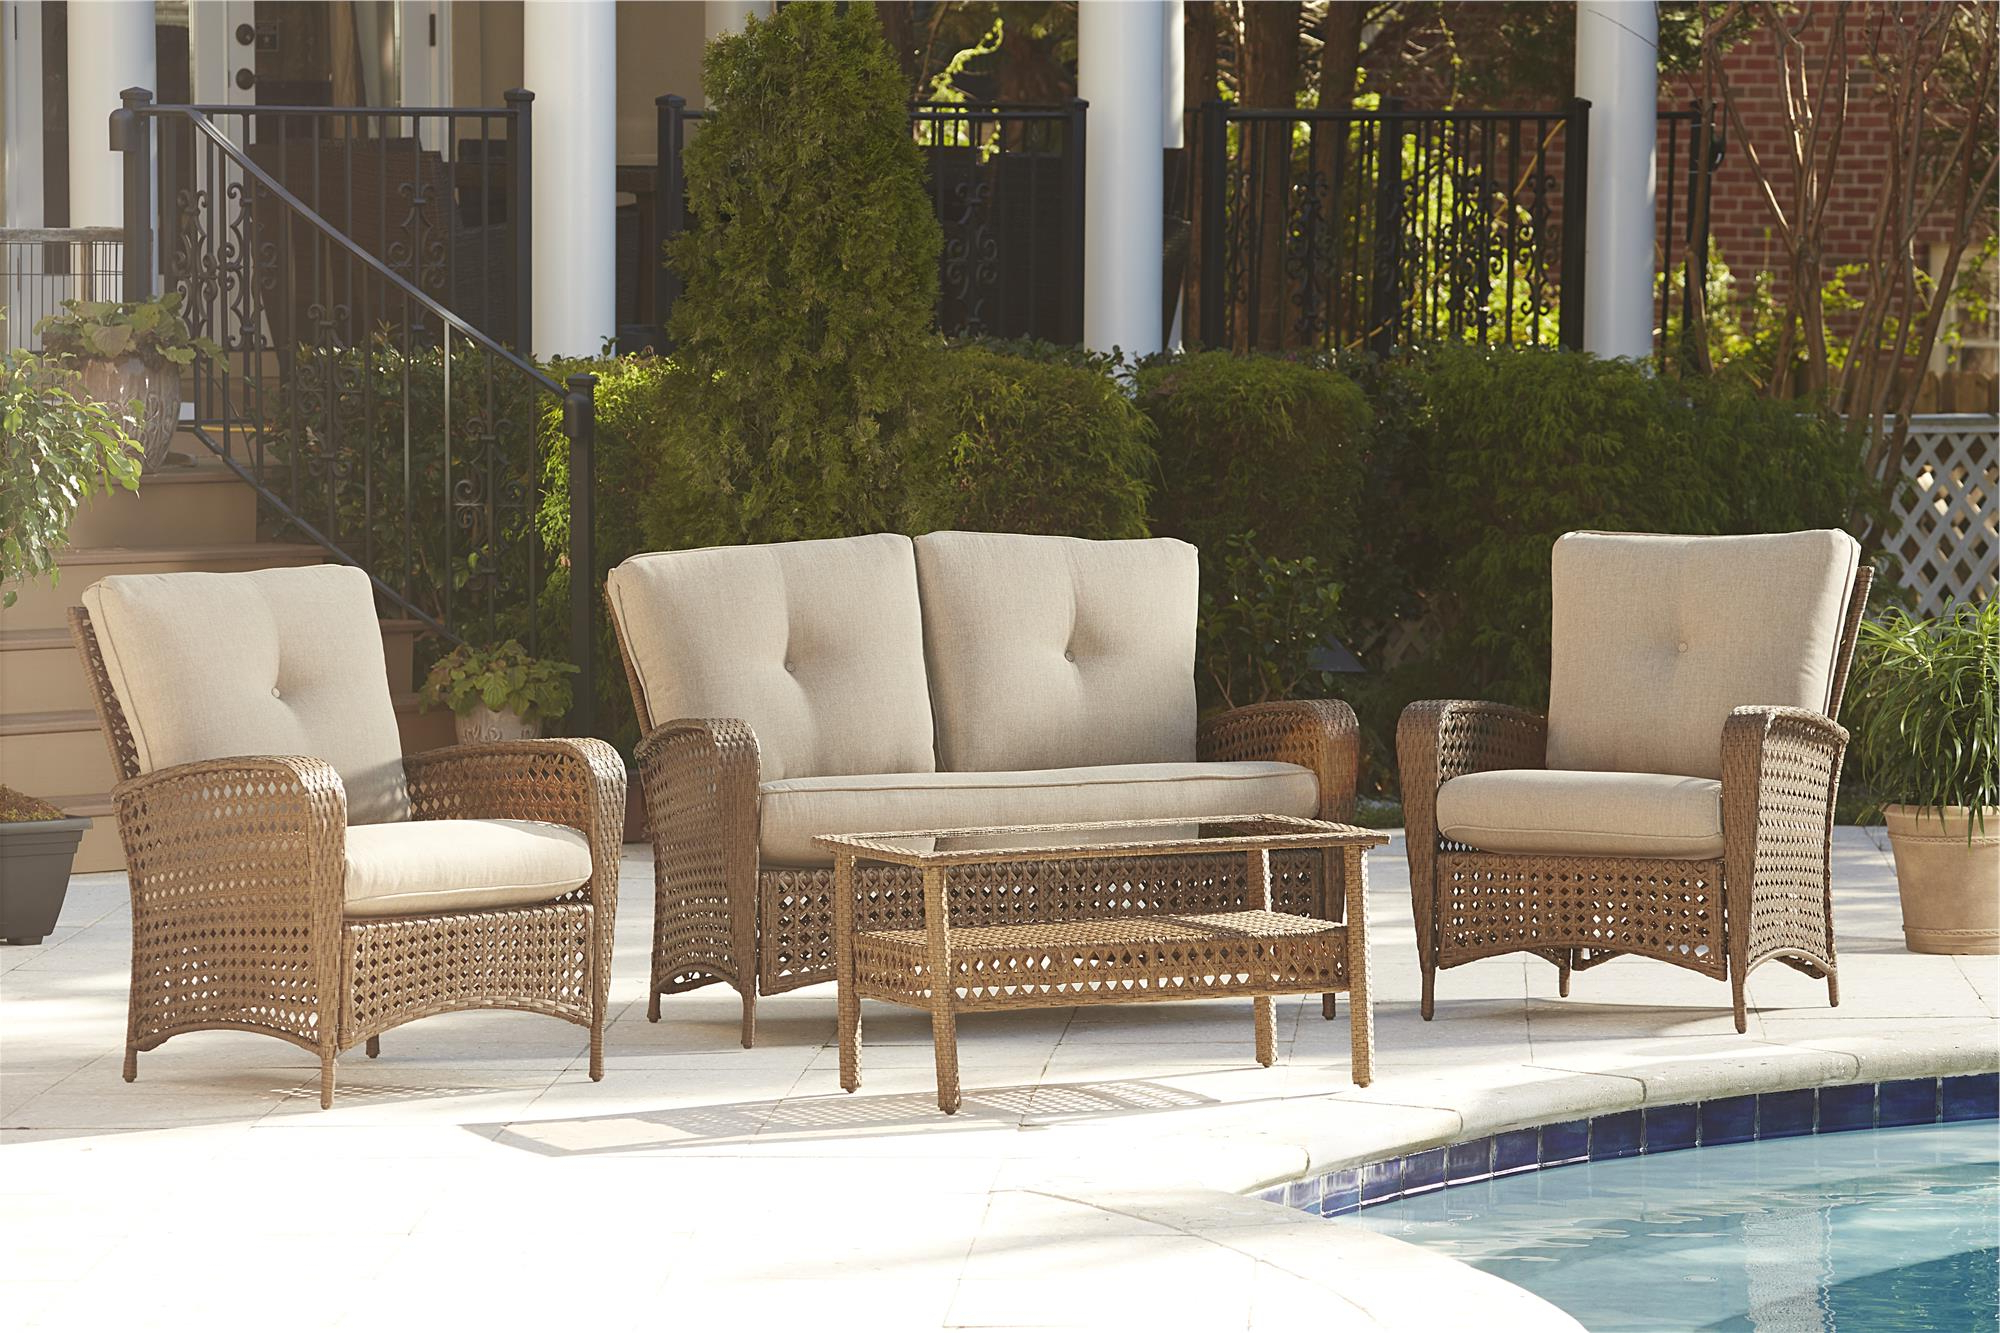 Fashionable Cosco Outdoor Steel Woven Wicker Chaise Lounge Chairs Regarding Cosco Outdoor Products (View 11 of 25)